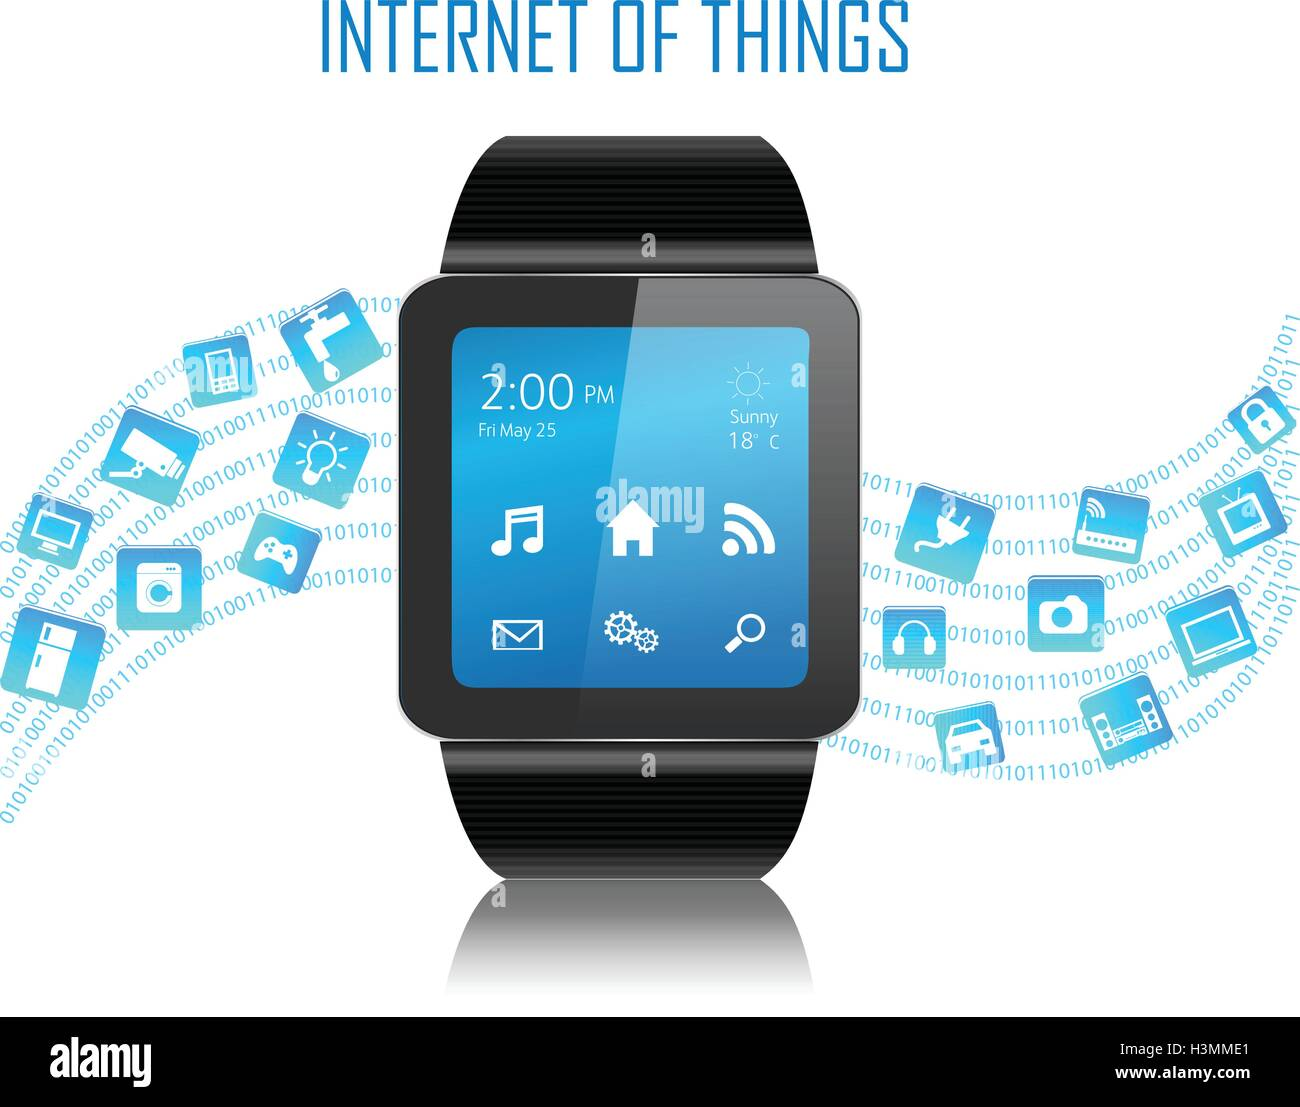 Smartwatch with Internet of things (IoT) icons connecting together. Internet networking concept. - Stock Image